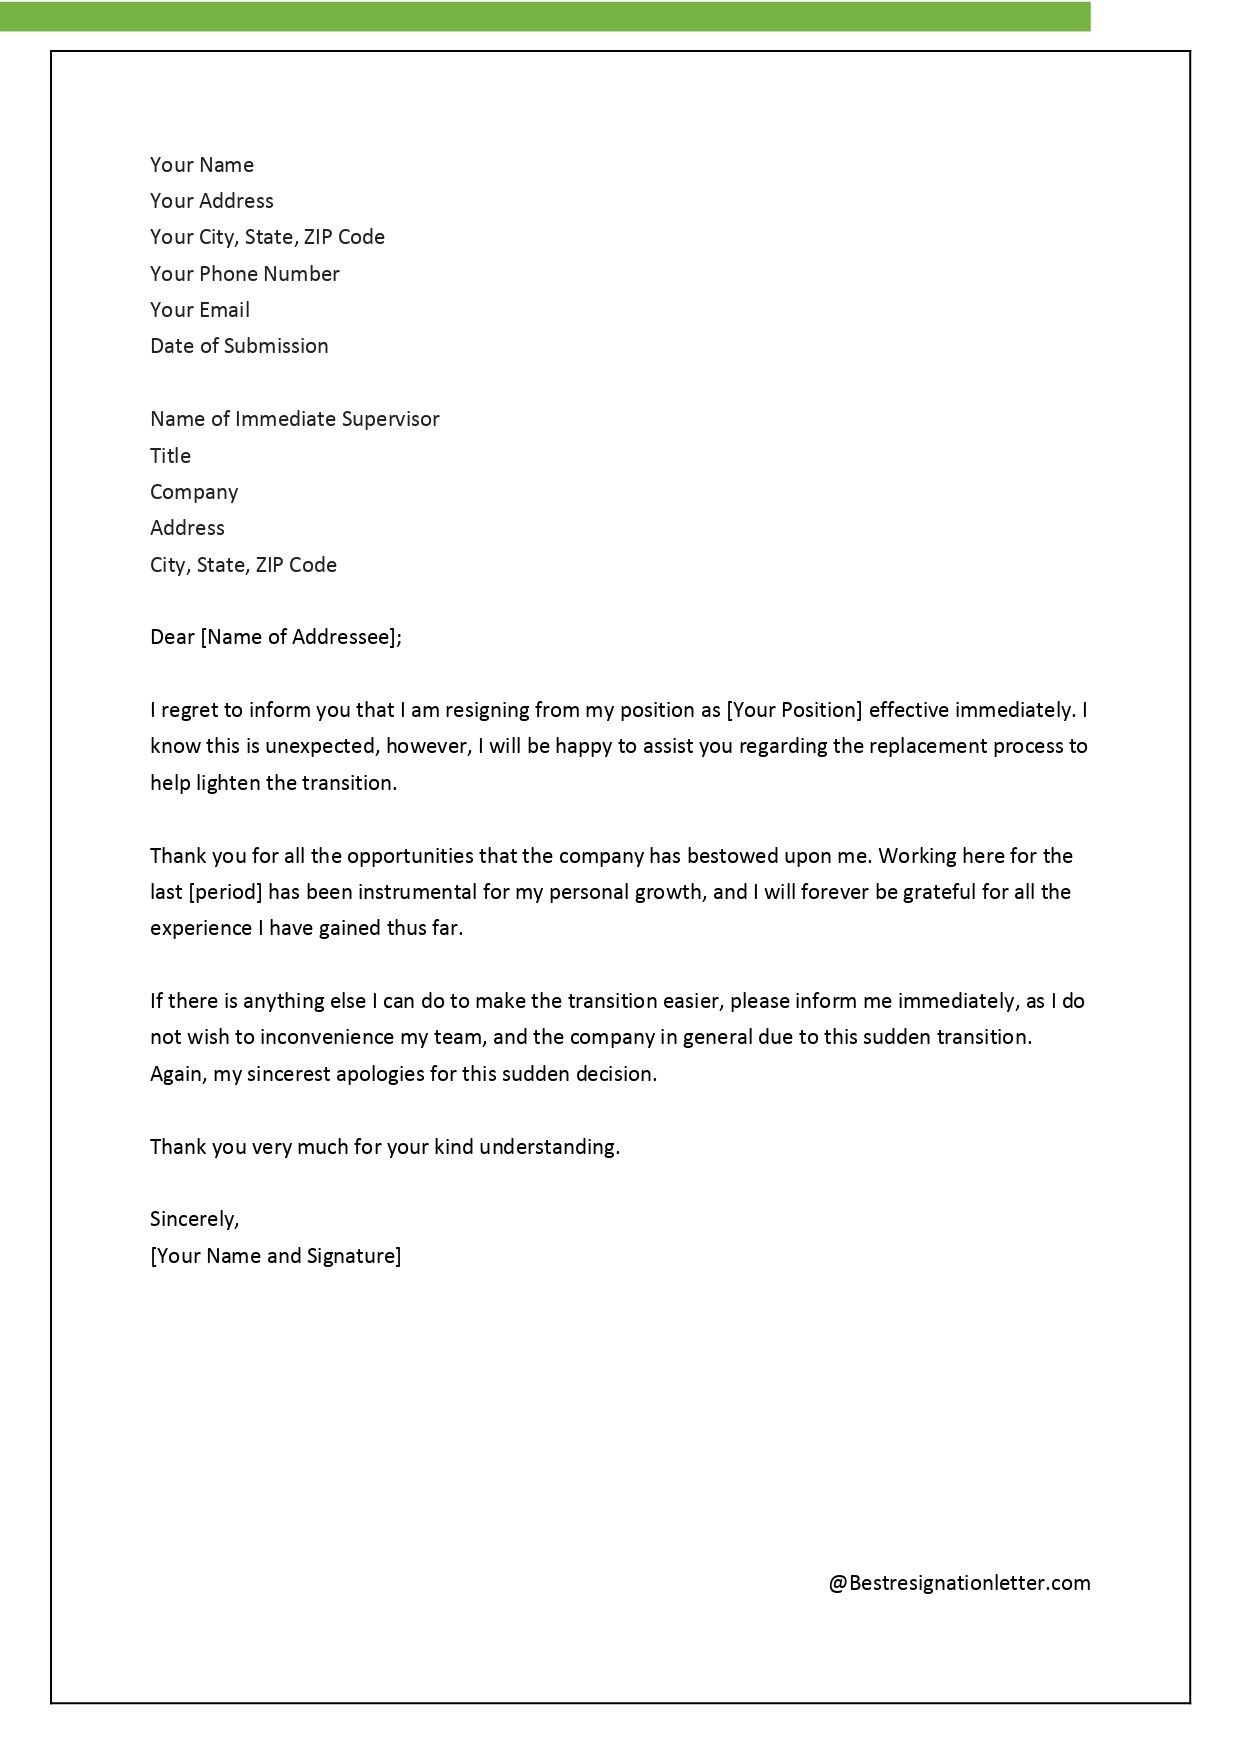 resignation letter template for bpo seven common mistakes f&b manager resume sample templates marketing professionals example objective in fresh graduate